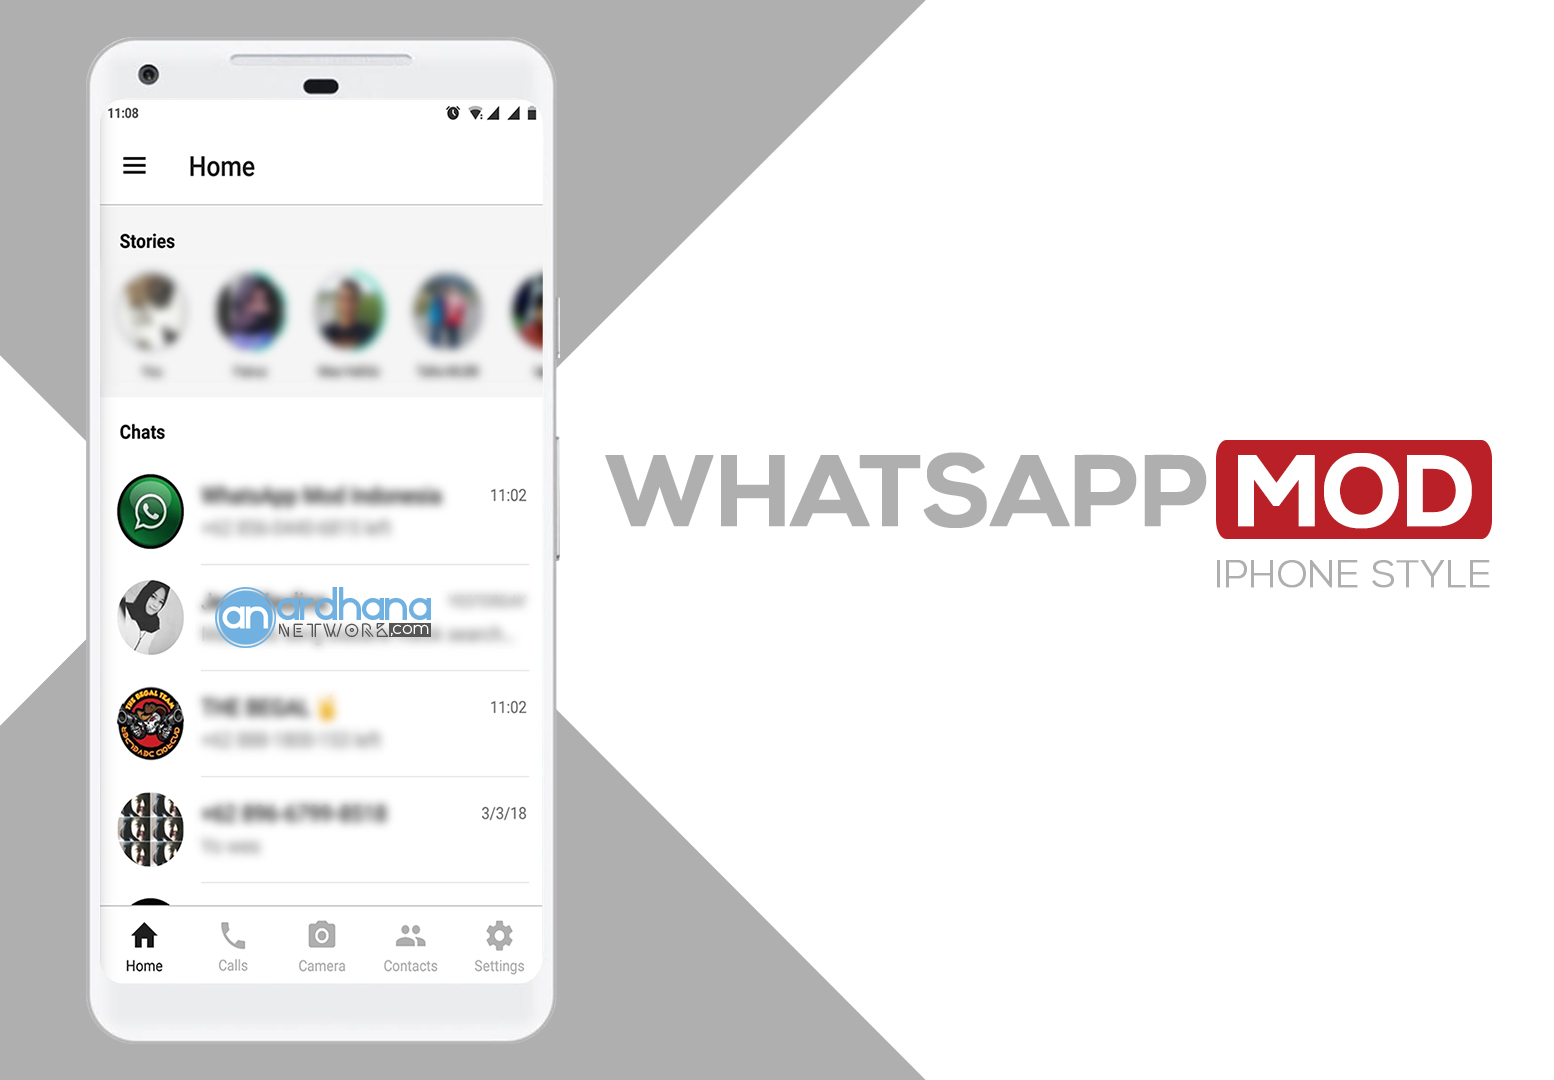 Whatsapp MOD V2.17.425 - iPhone Style